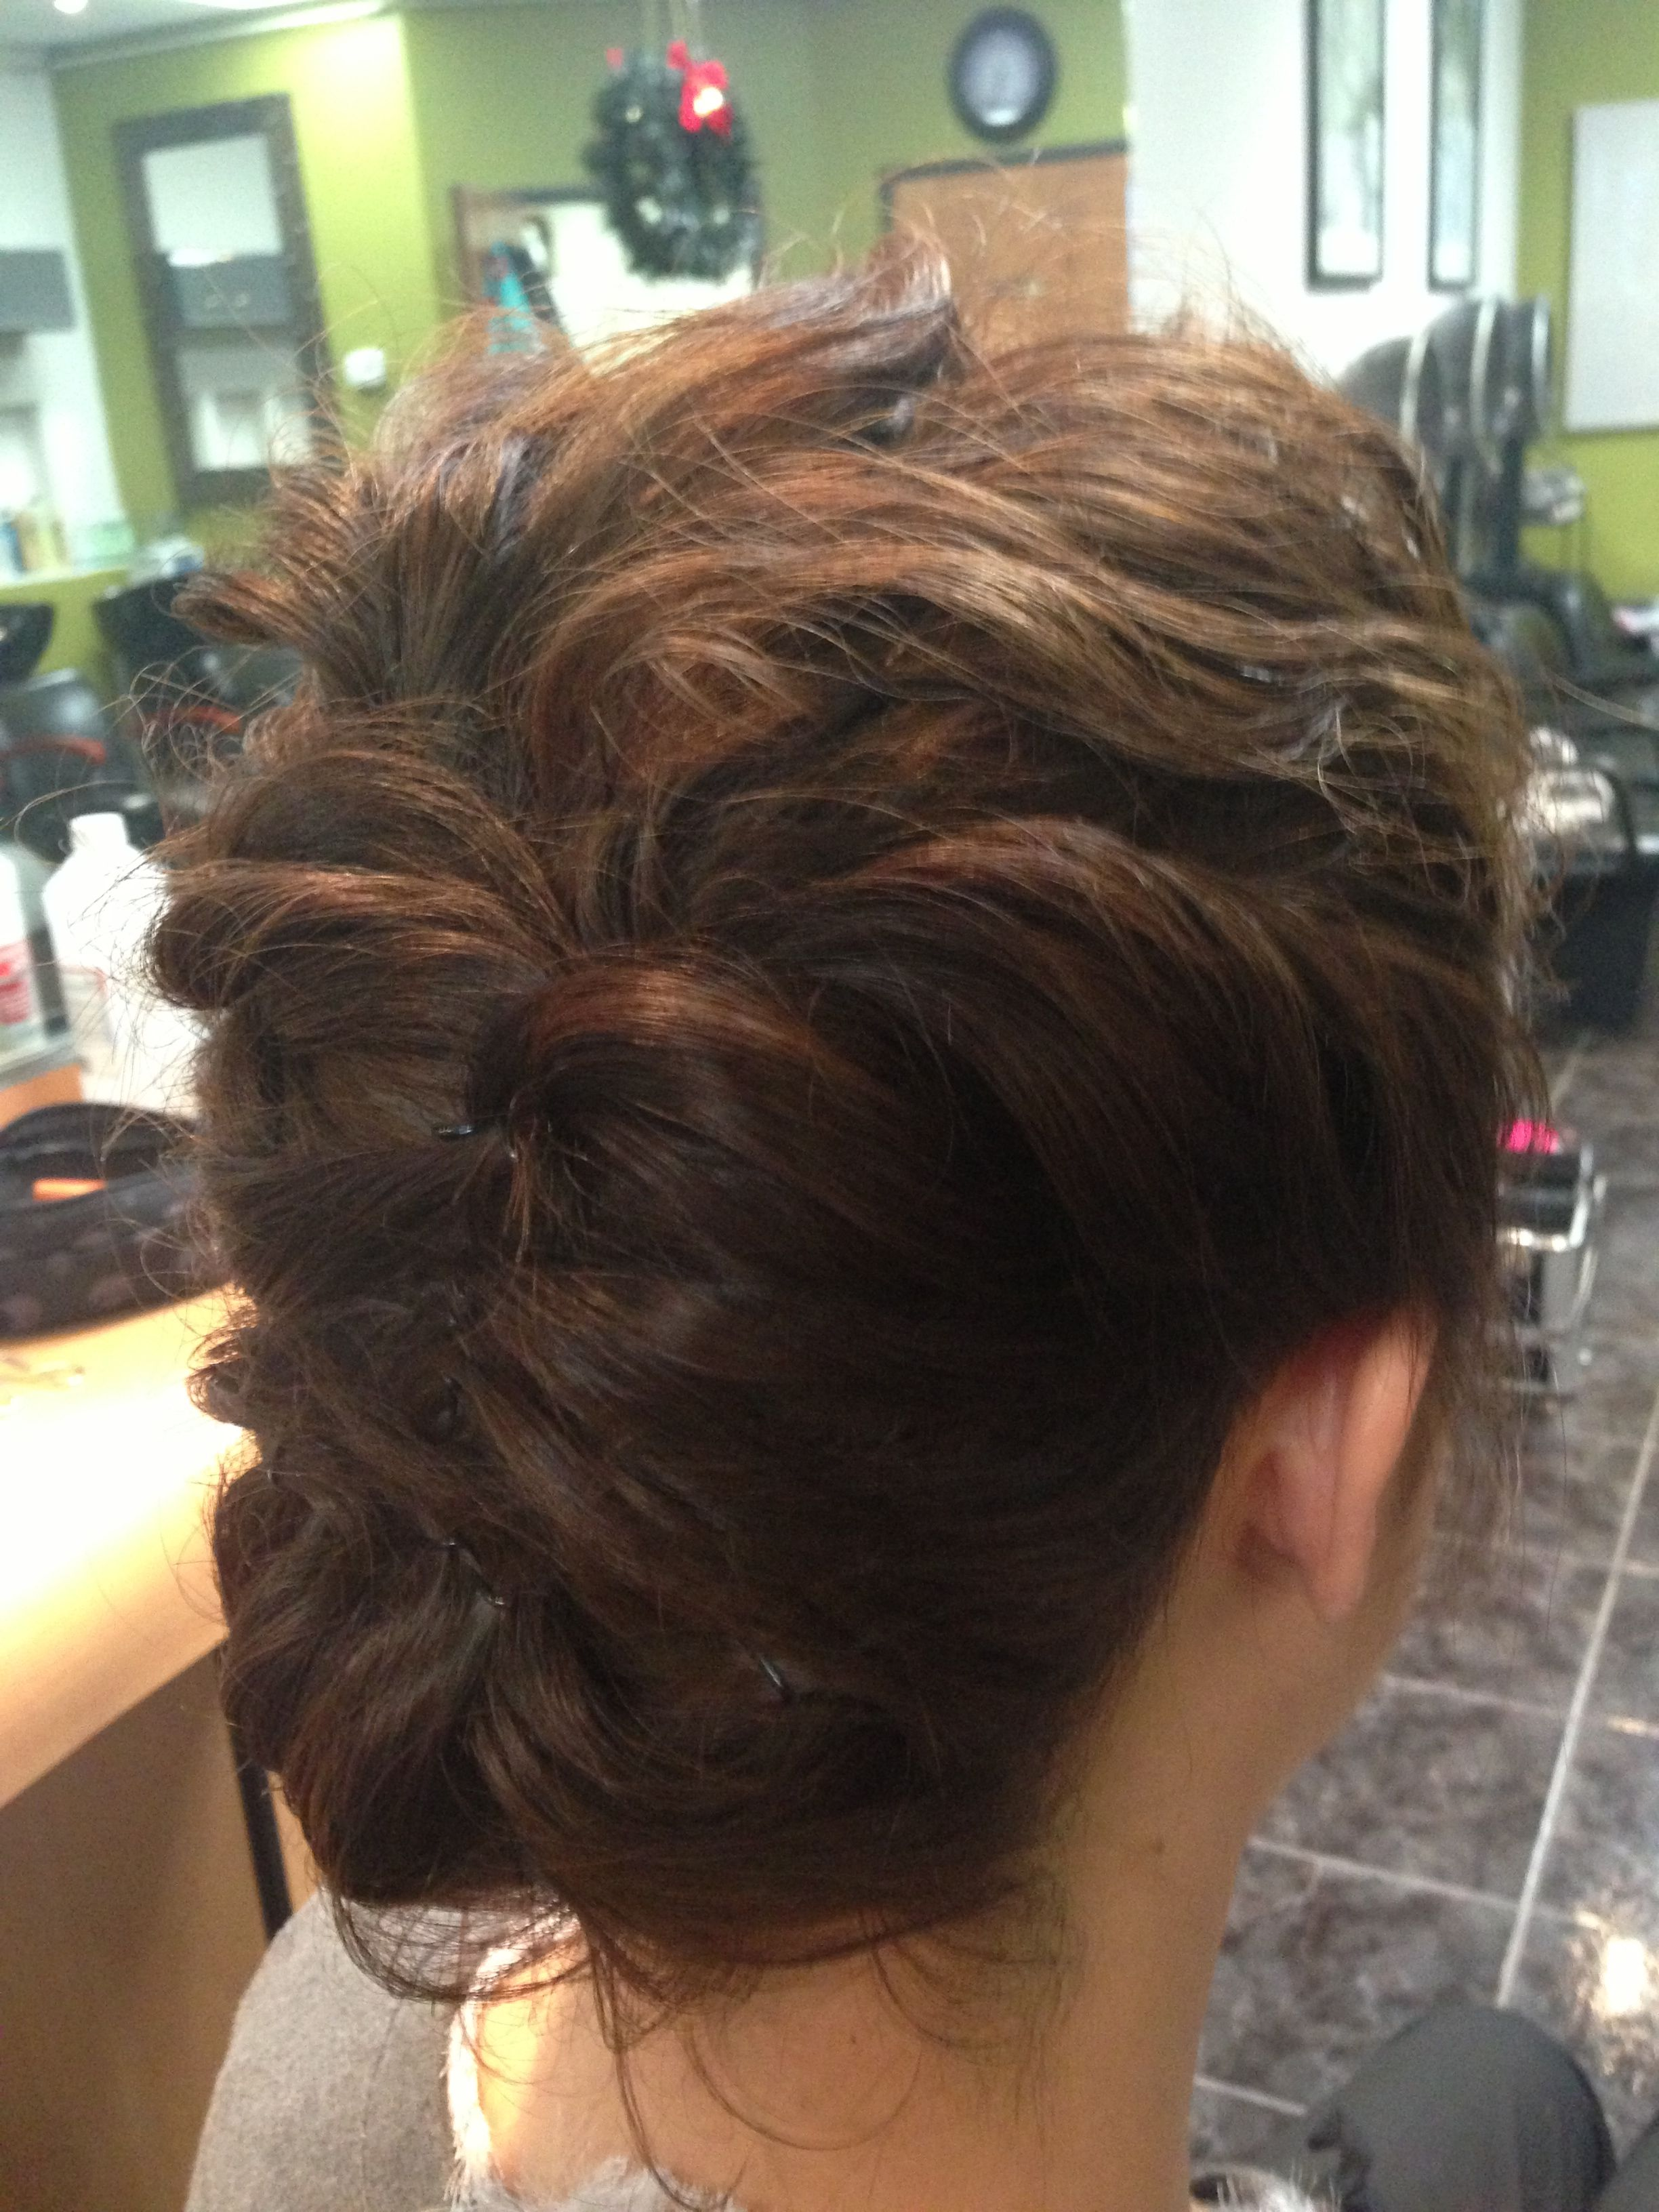 Best Hairstyle For Big Forehead Men Updos Loose Pinterest